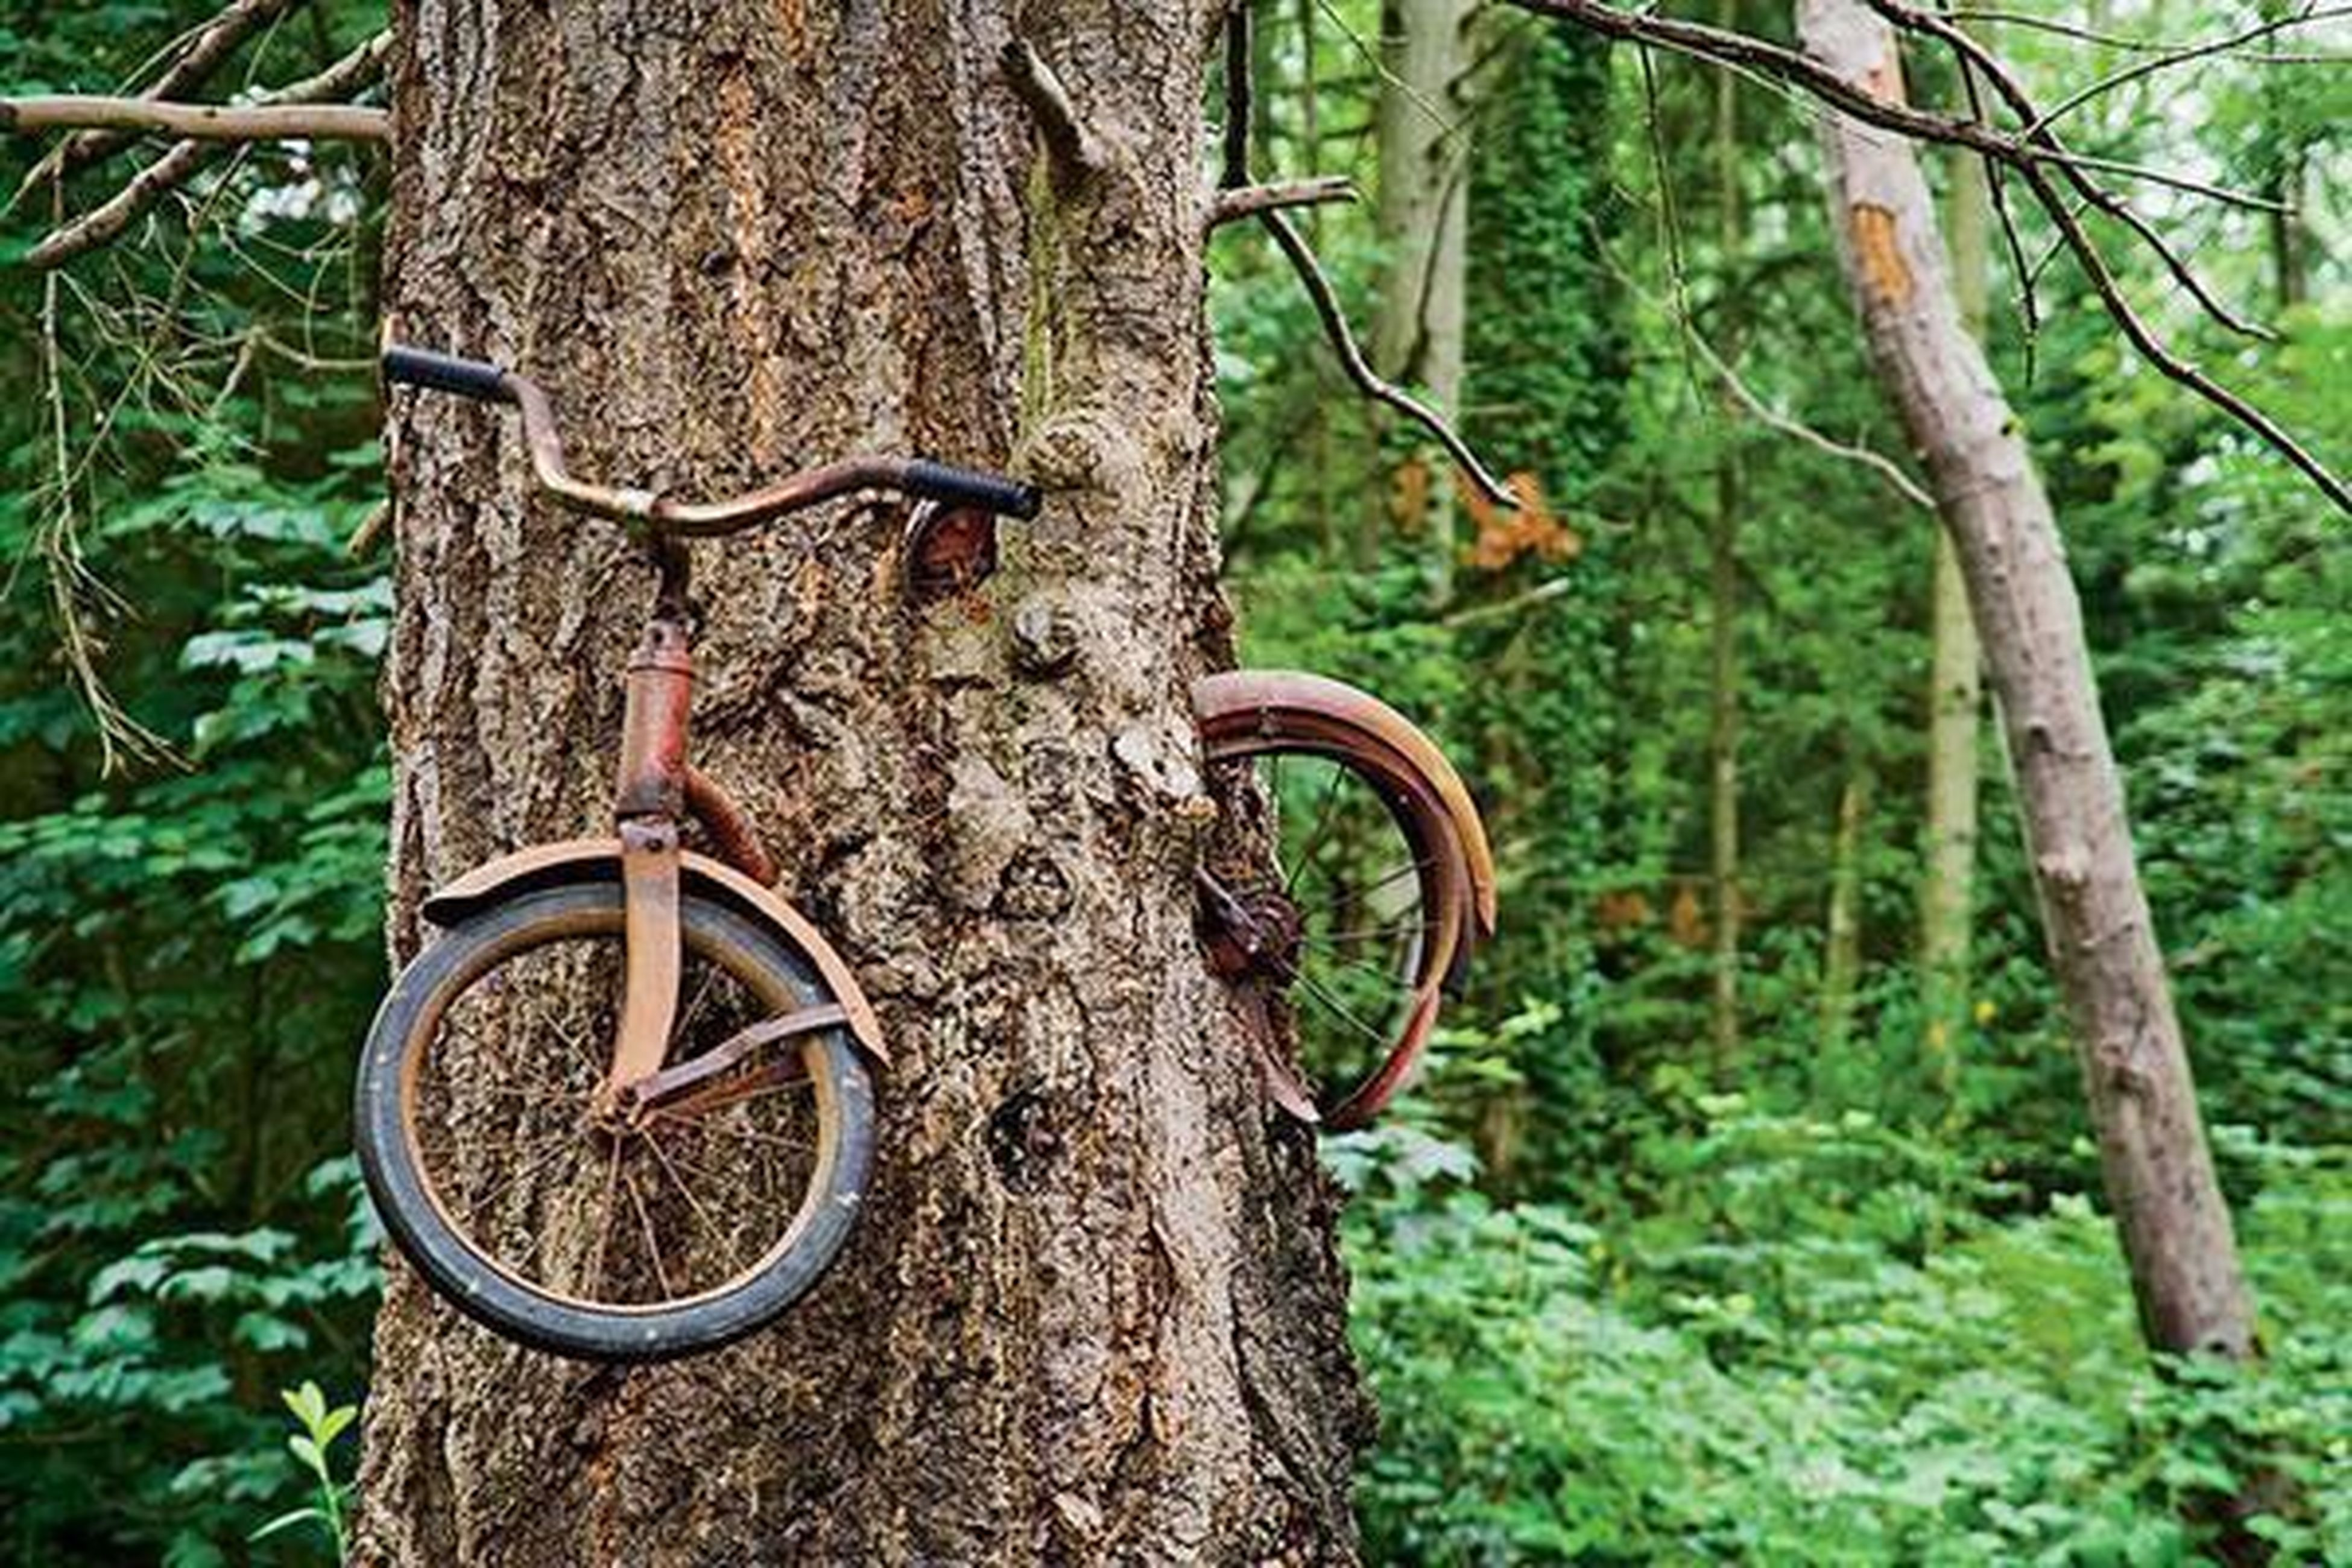 bicycle, tree, tree trunk, growth, transportation, branch, mode of transport, plant, nature, forest, day, outdoors, green color, land vehicle, no people, tranquility, stationary, leaning, beauty in nature, wood - material